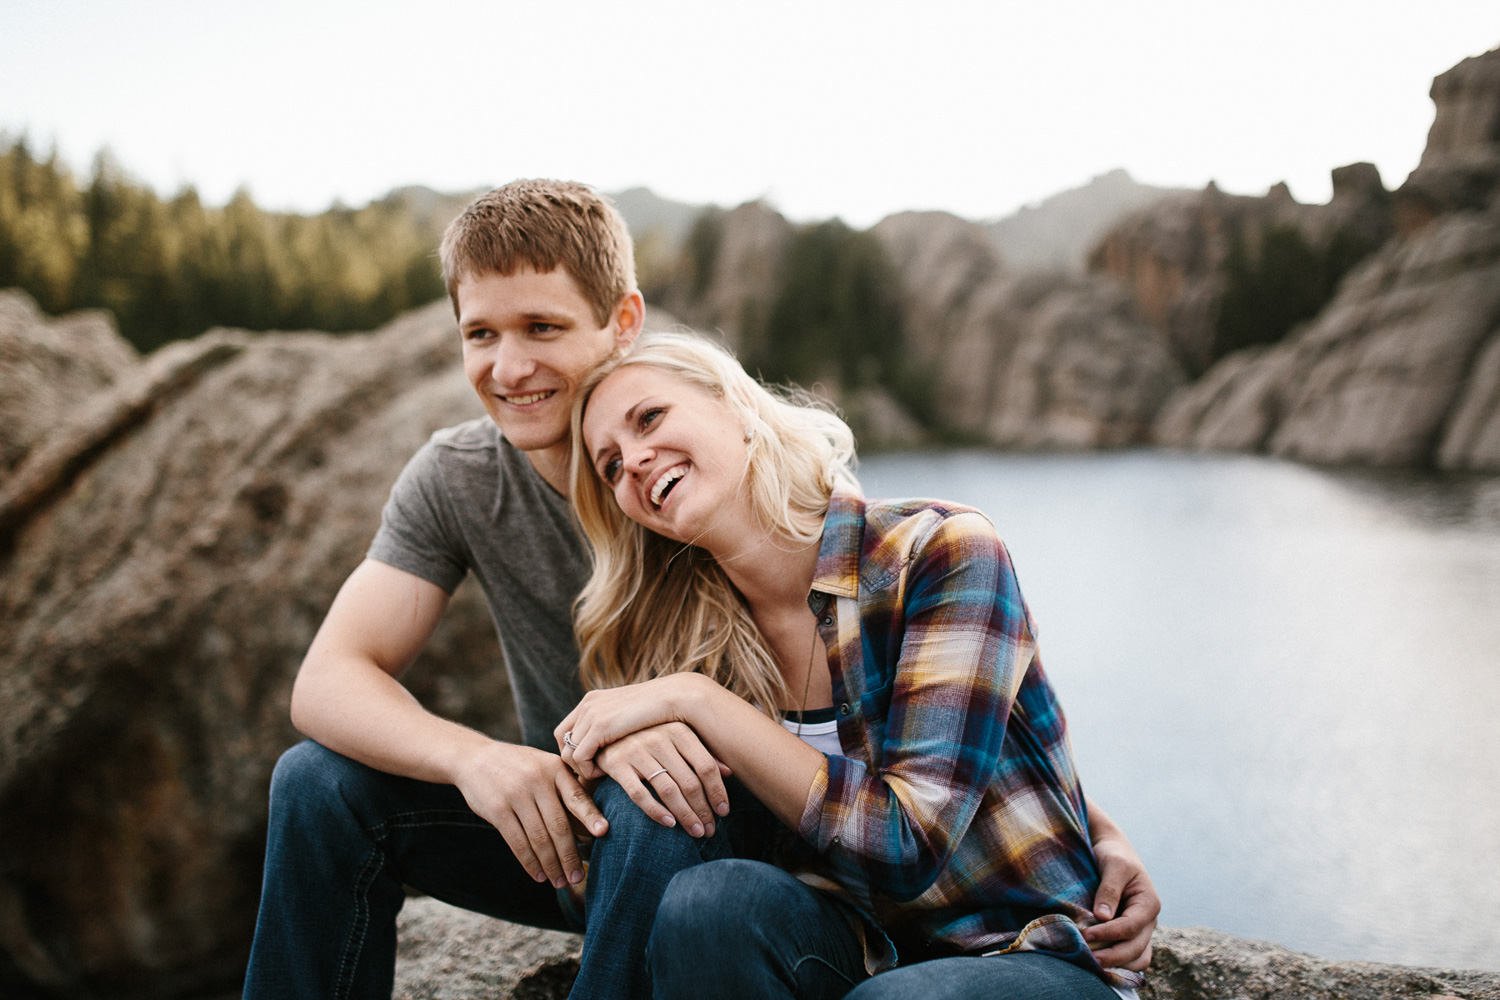 SiouxFalls_BlackHills_Adventure_Engagement_Wedding_Photographer_61.jpg